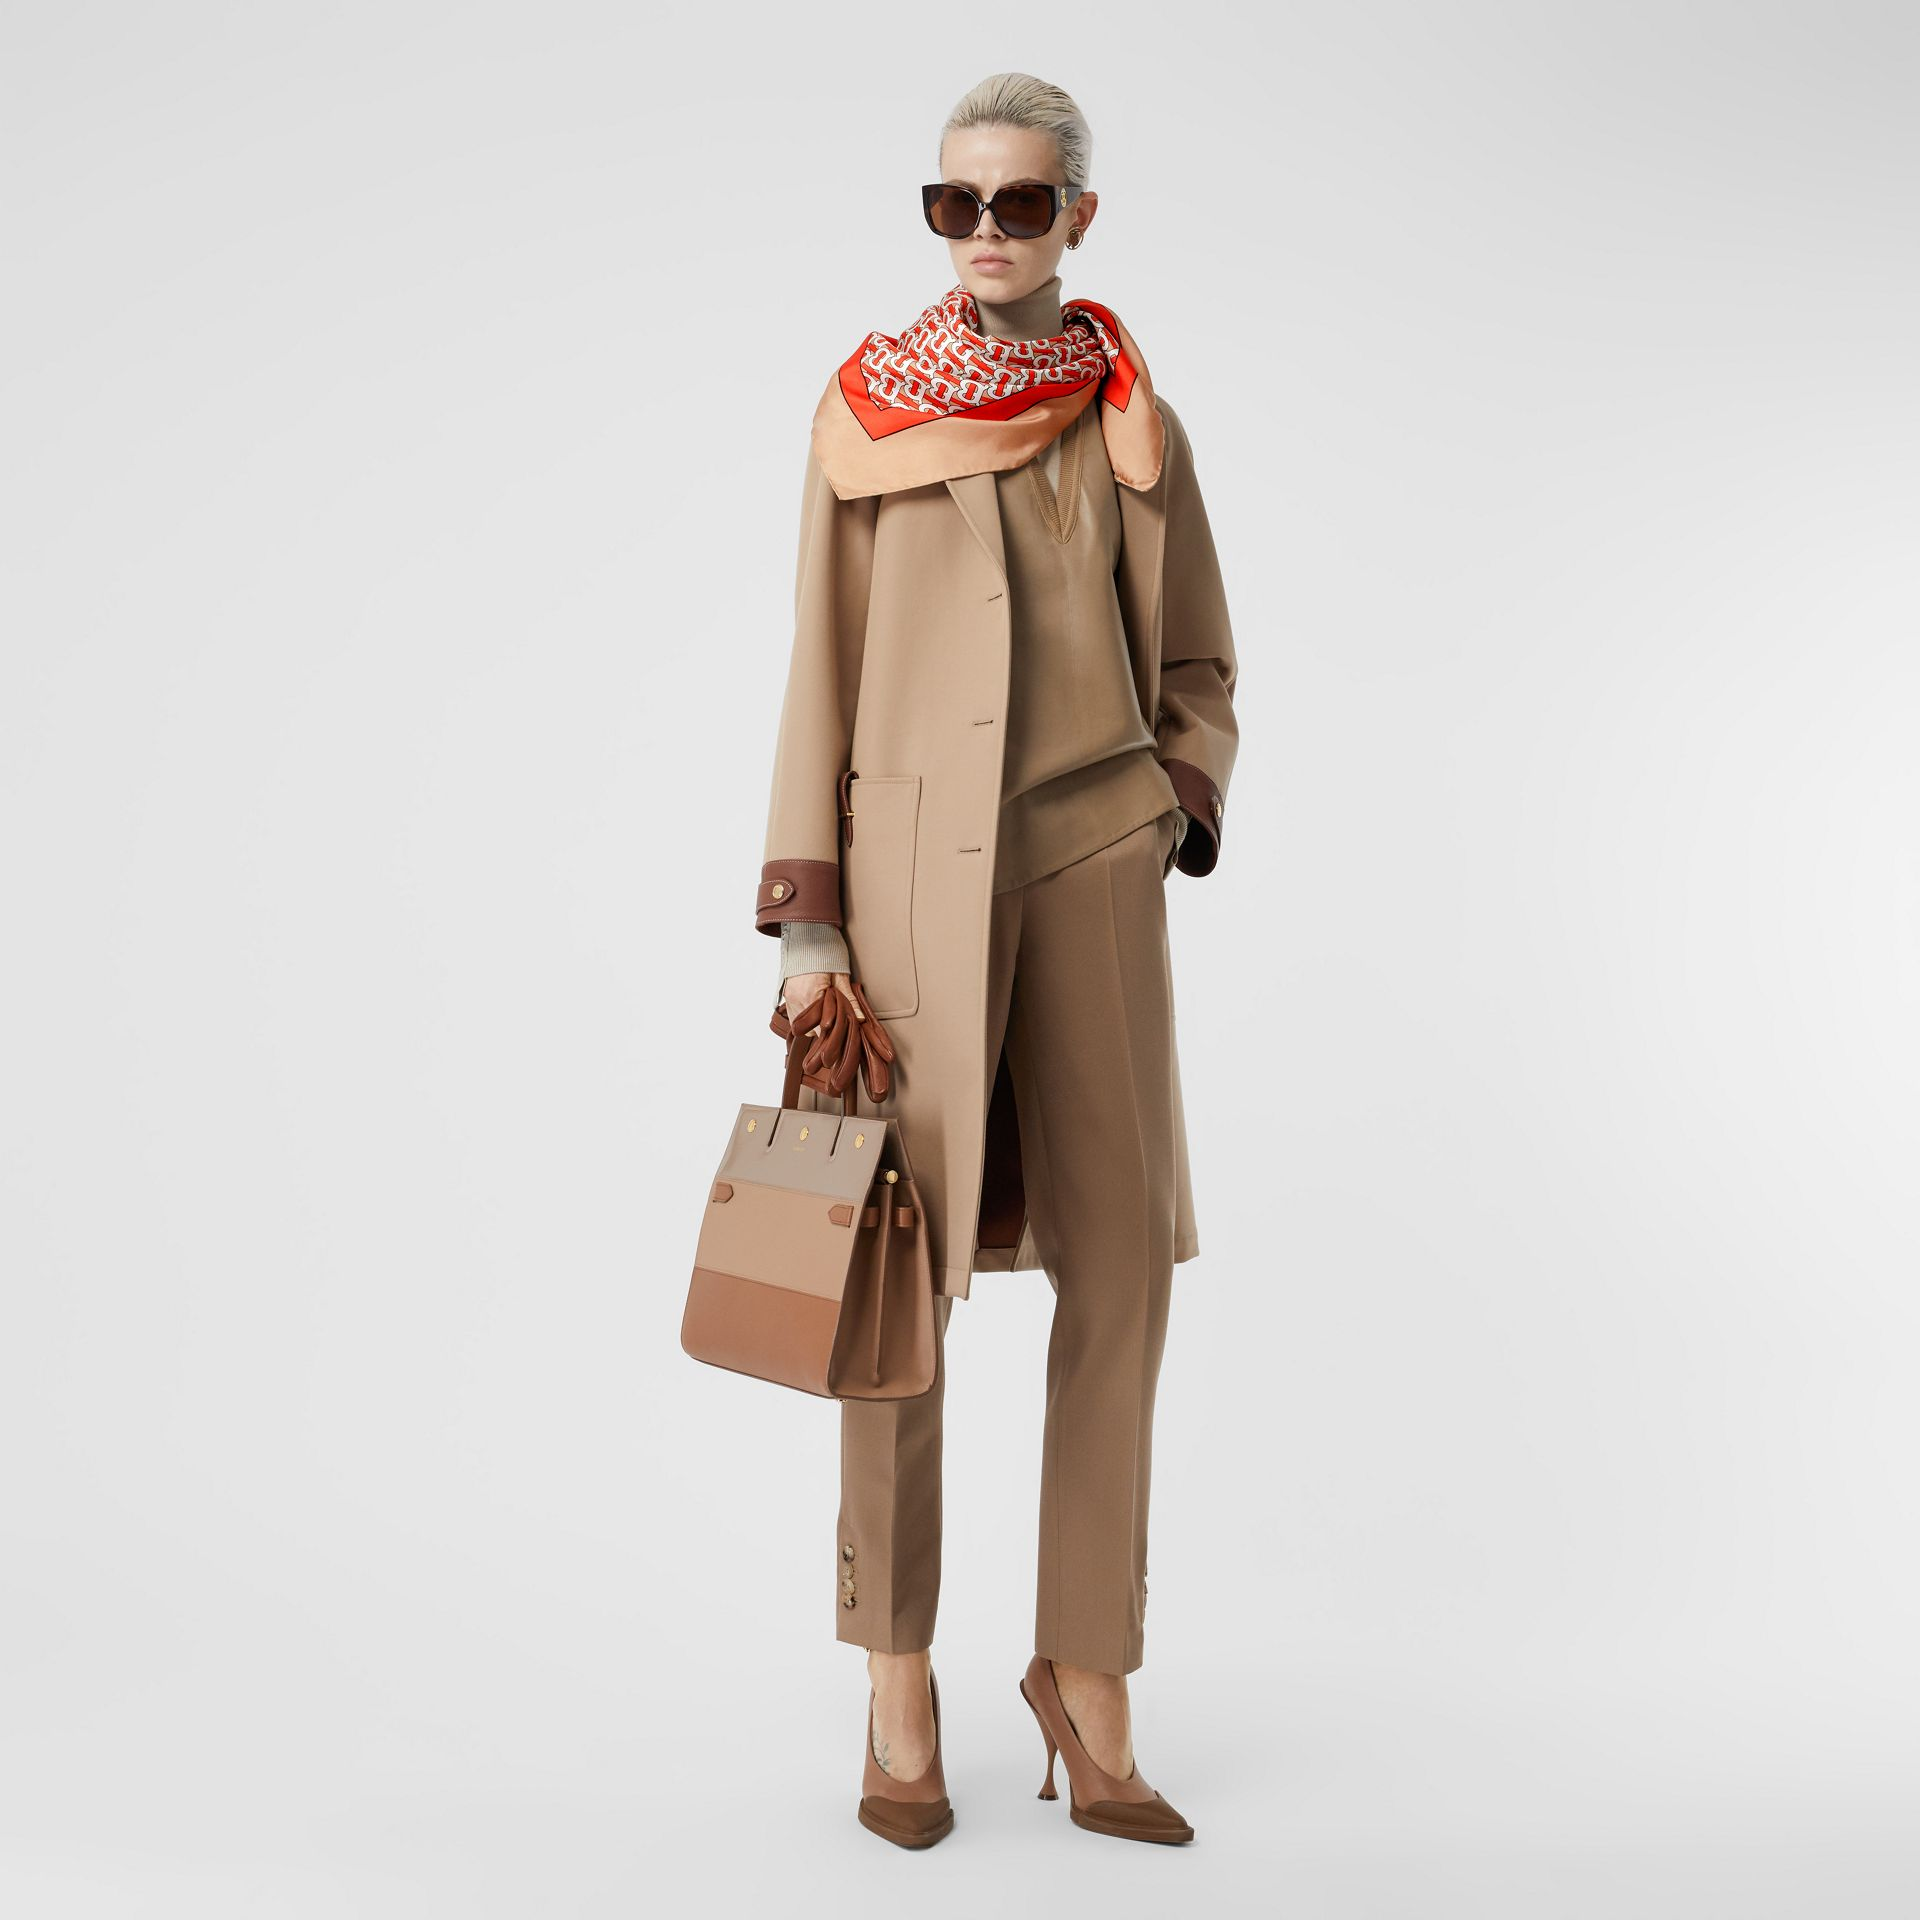 Monogram Print Silk Square Scarf in Vermilion - Women | Burberry United Kingdom - gallery image 5